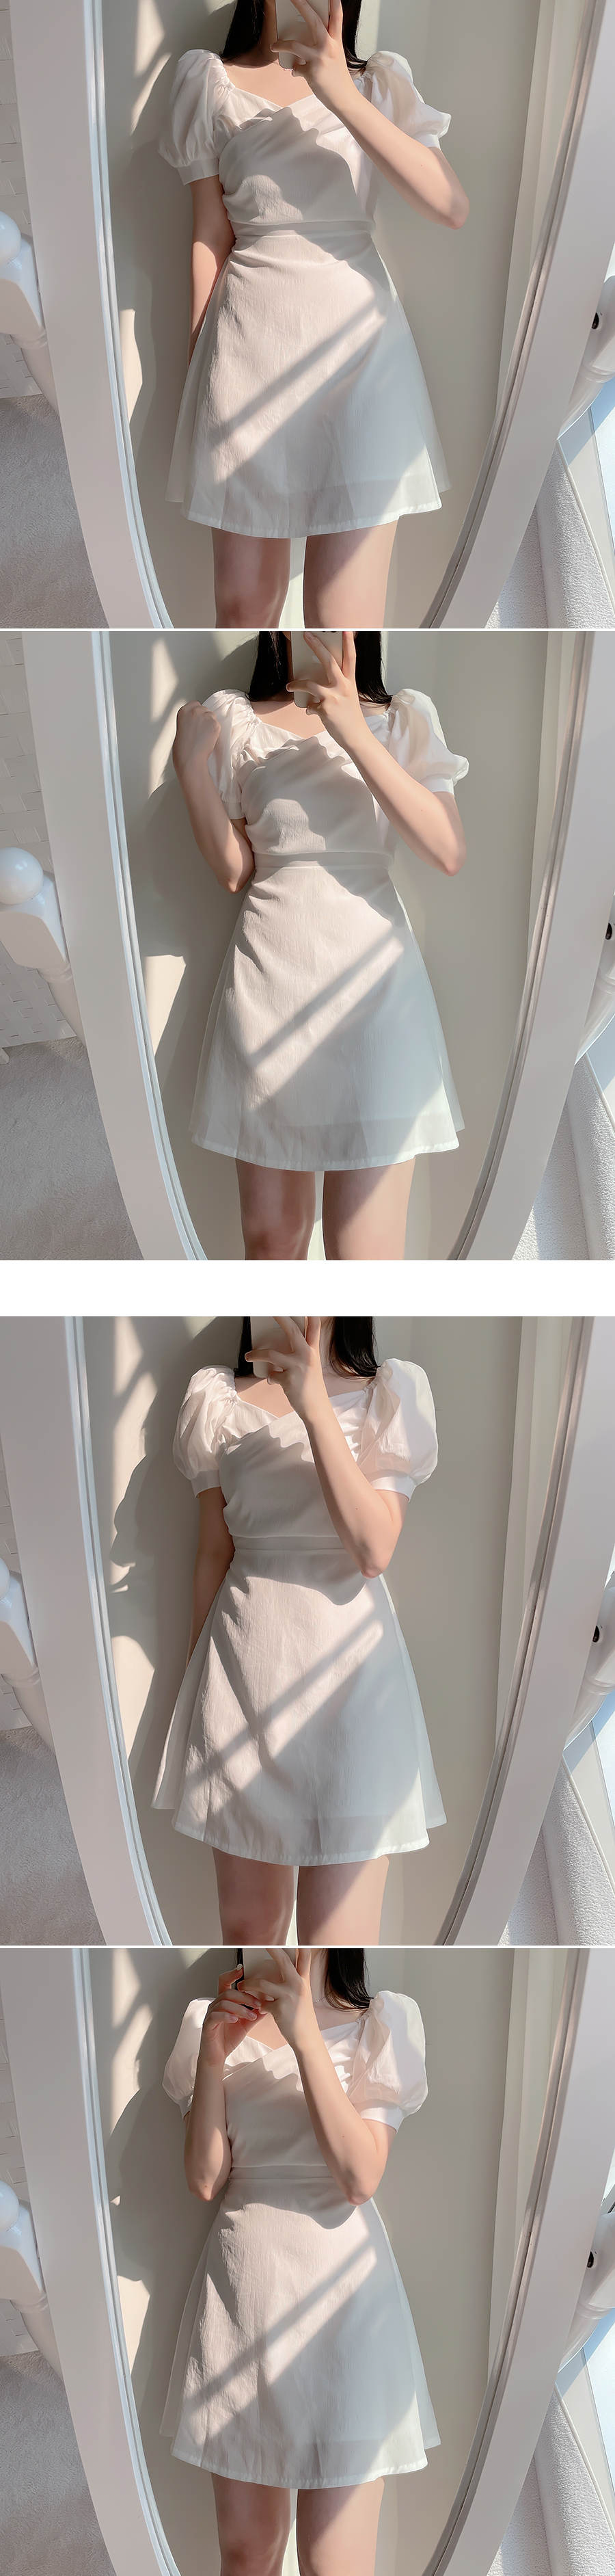 Angeling Wrap Puff Dress 3color